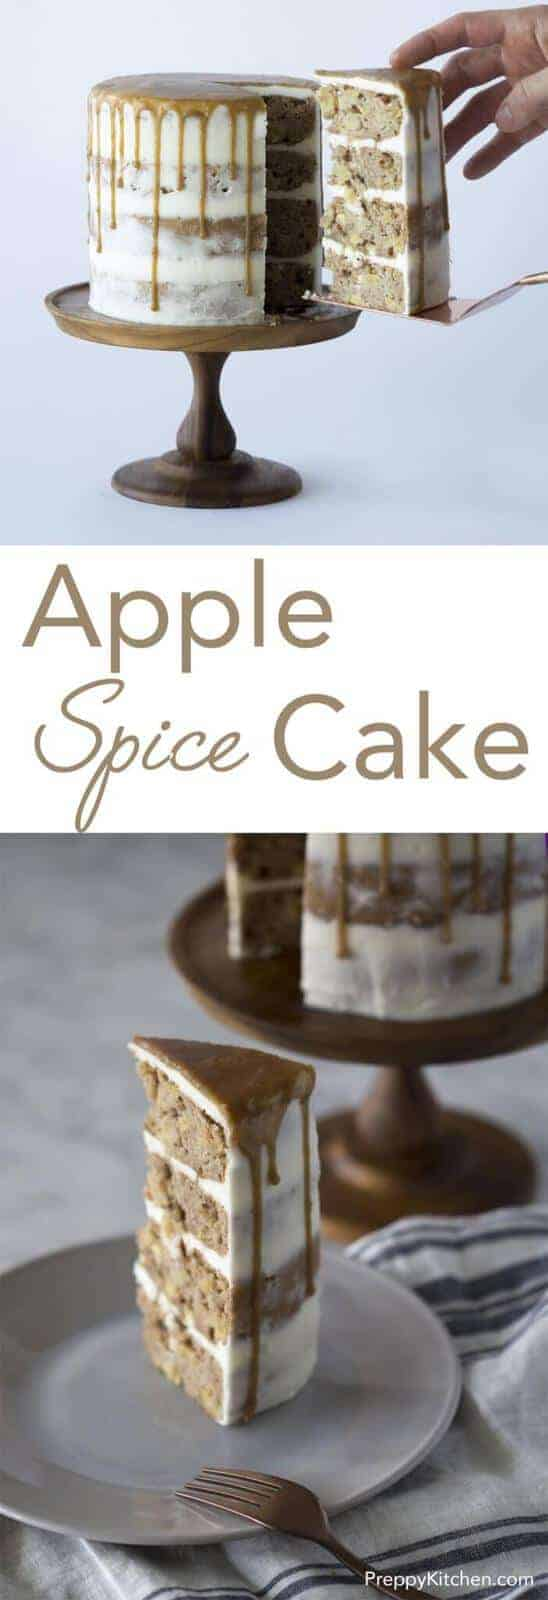 Perfect for Autumn, this delicious caramel apple spice cake is packed with apples, Fall spices and caramel. Click over for full recipe andante video!